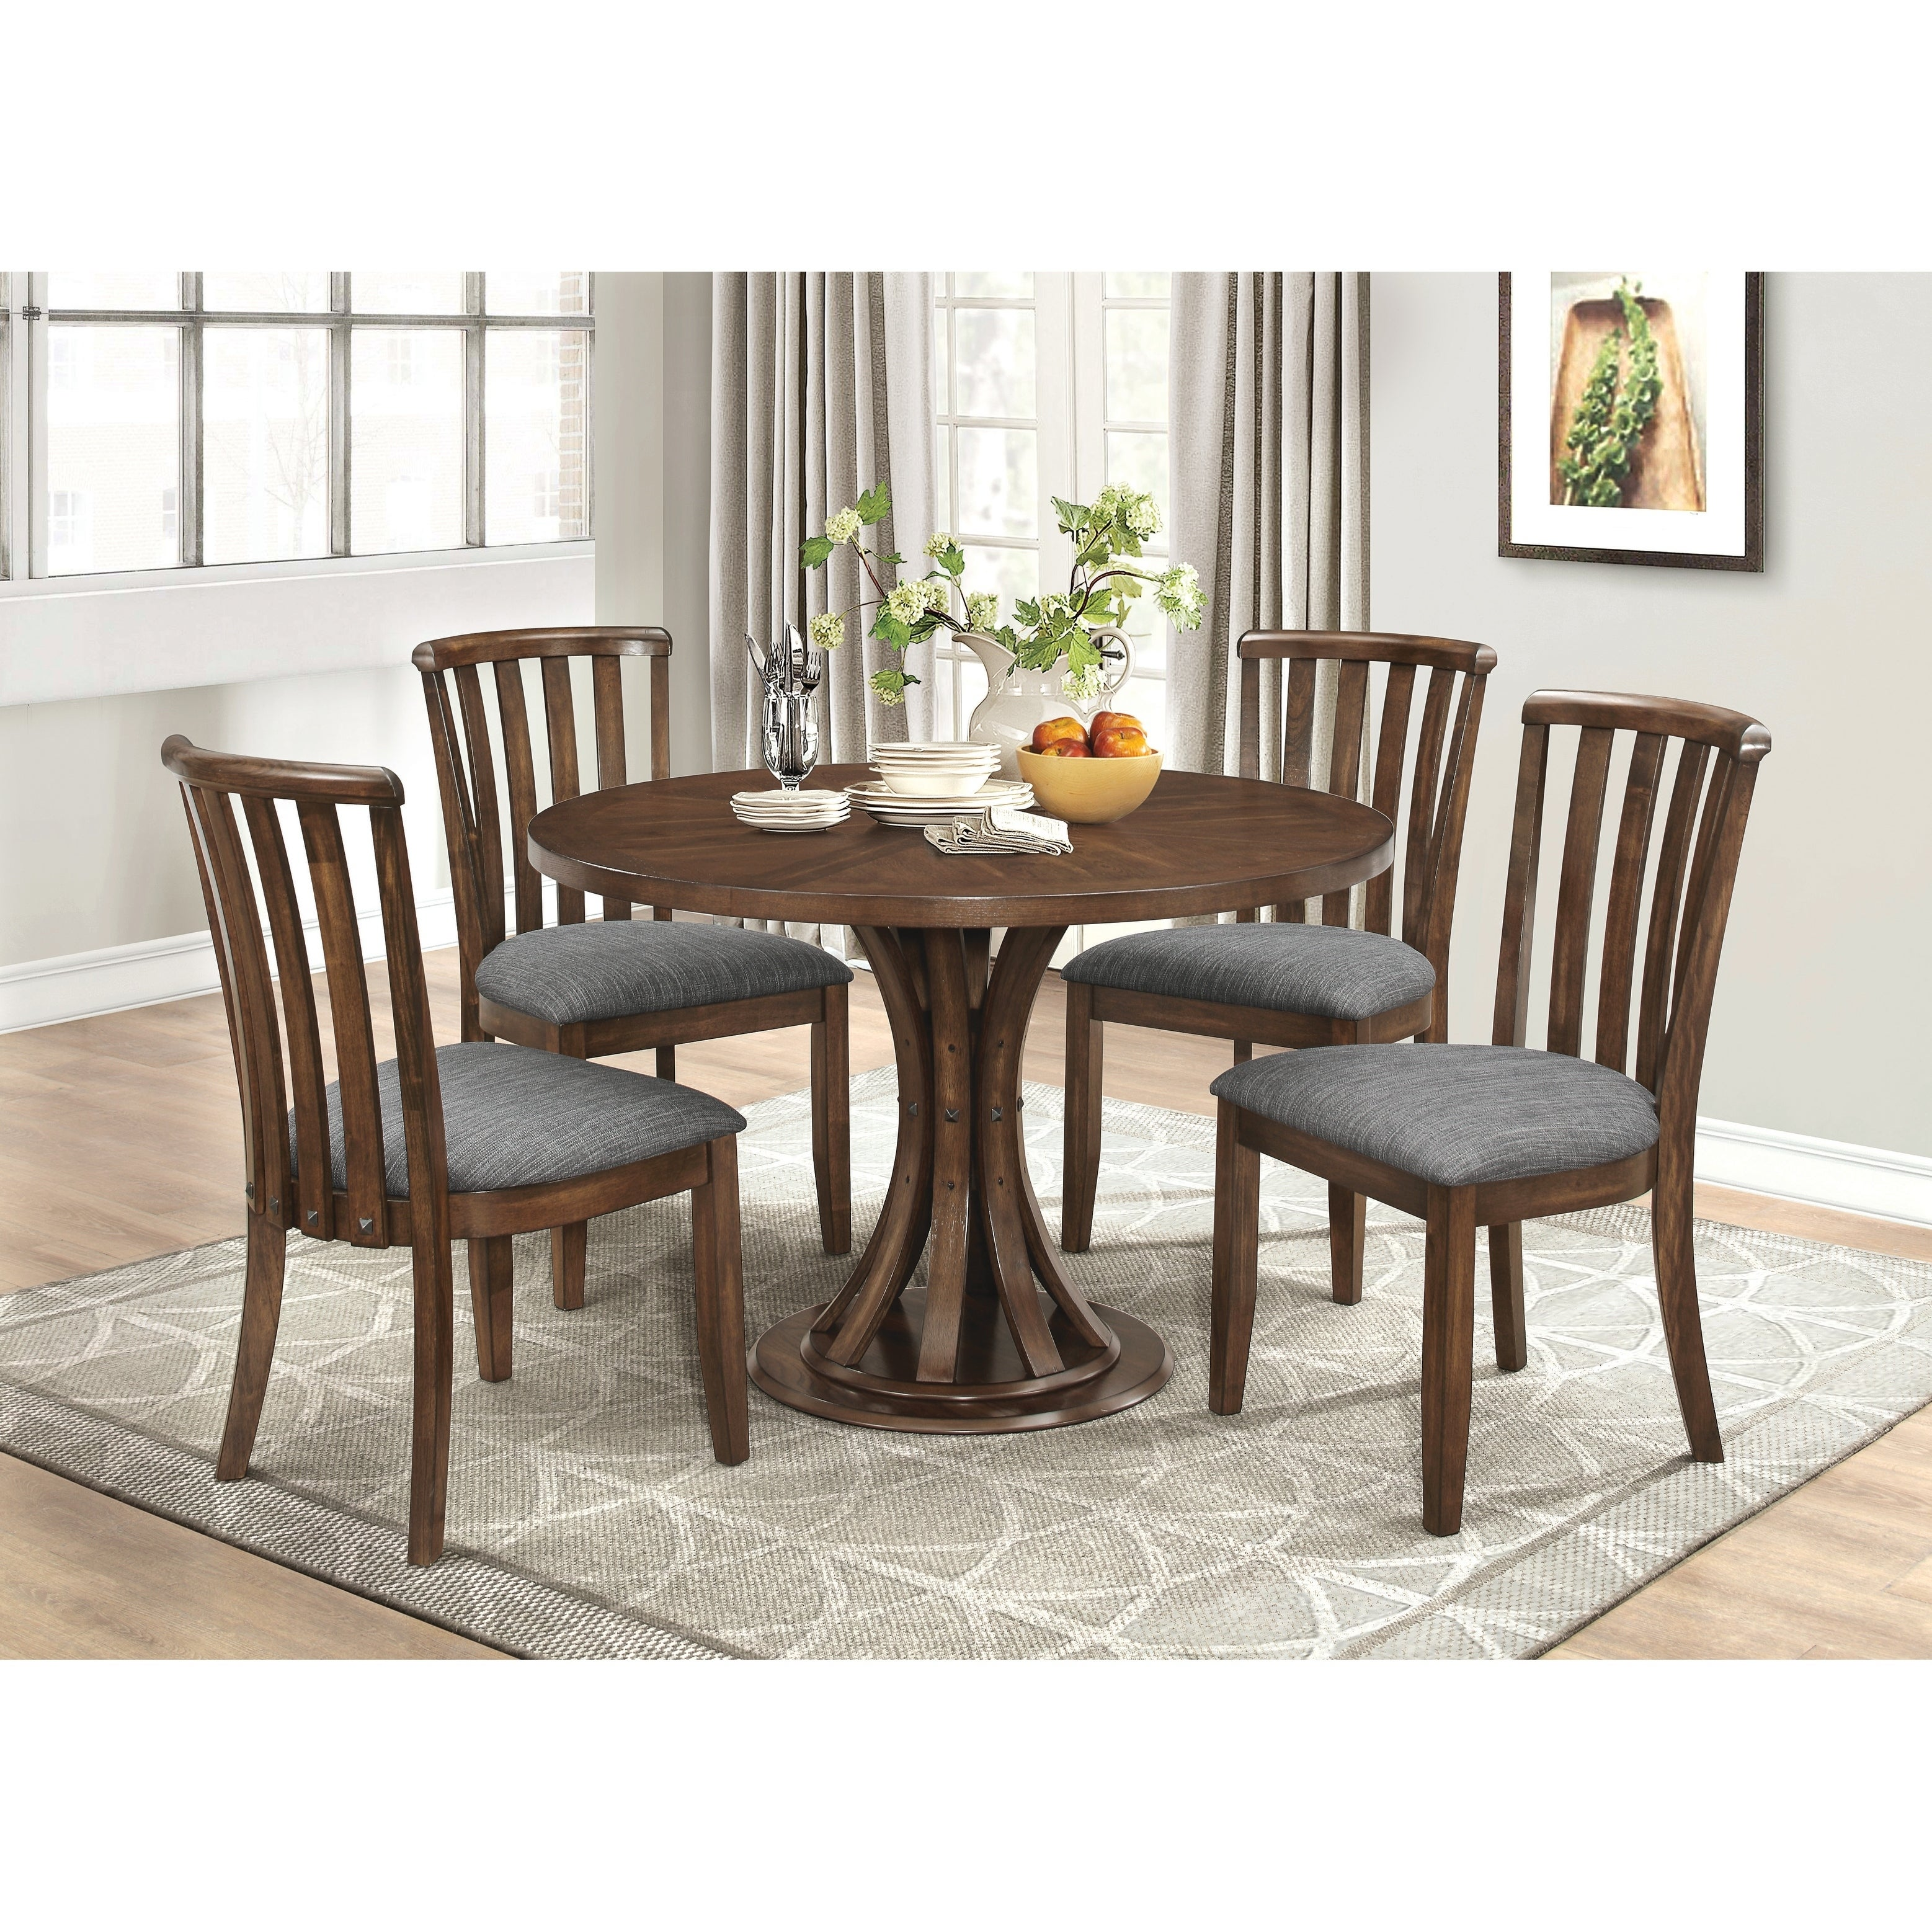 Shop prescott casual vintage cinnamon dining table brown on sale free shipping today overstock com 22579159